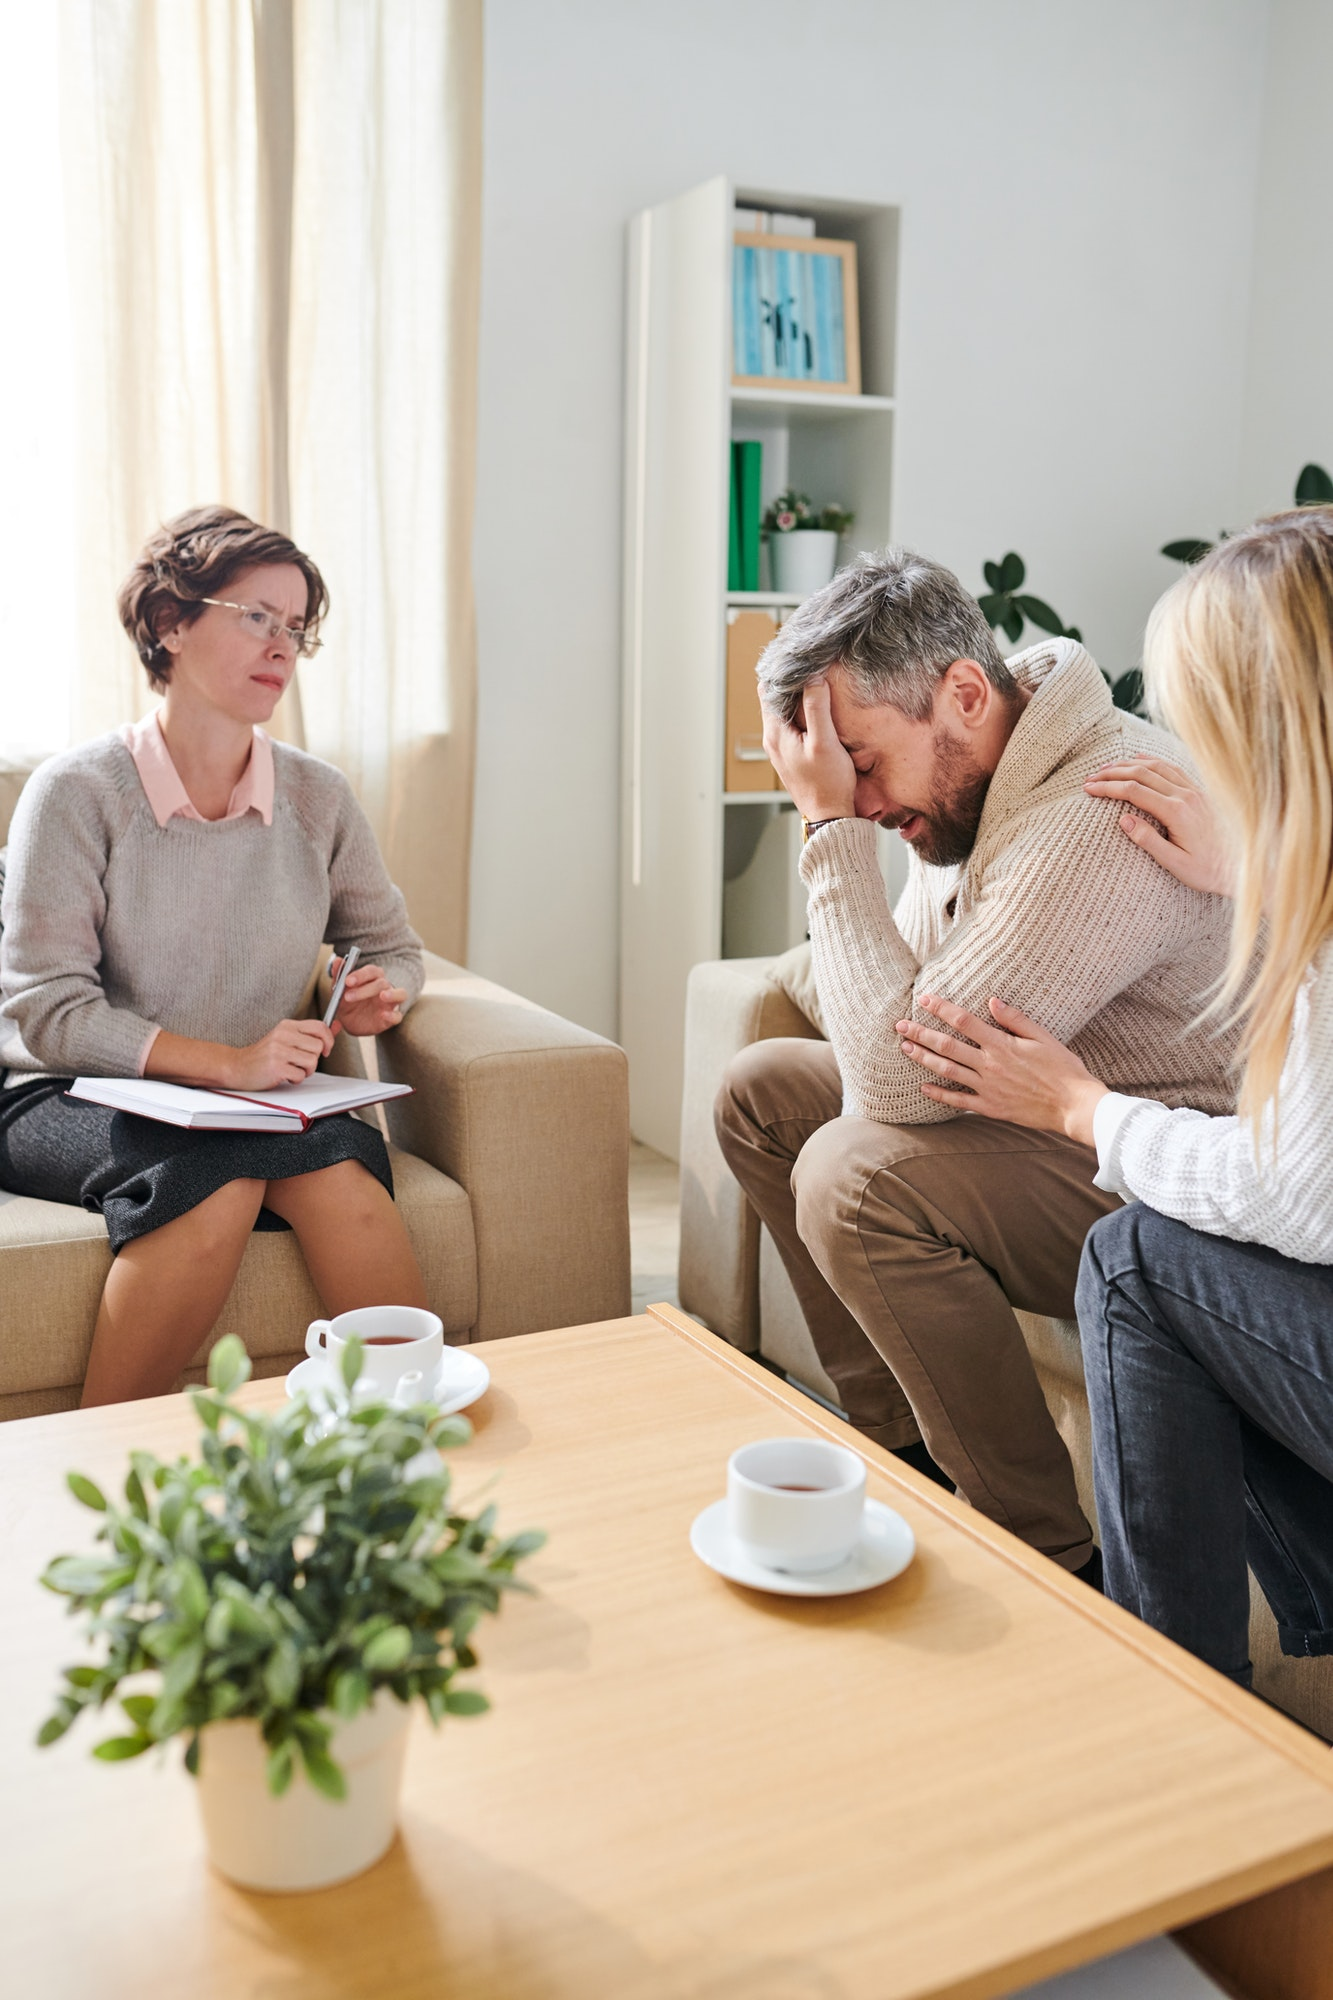 Frustrated man crying while wife supporting him at therapy sessi